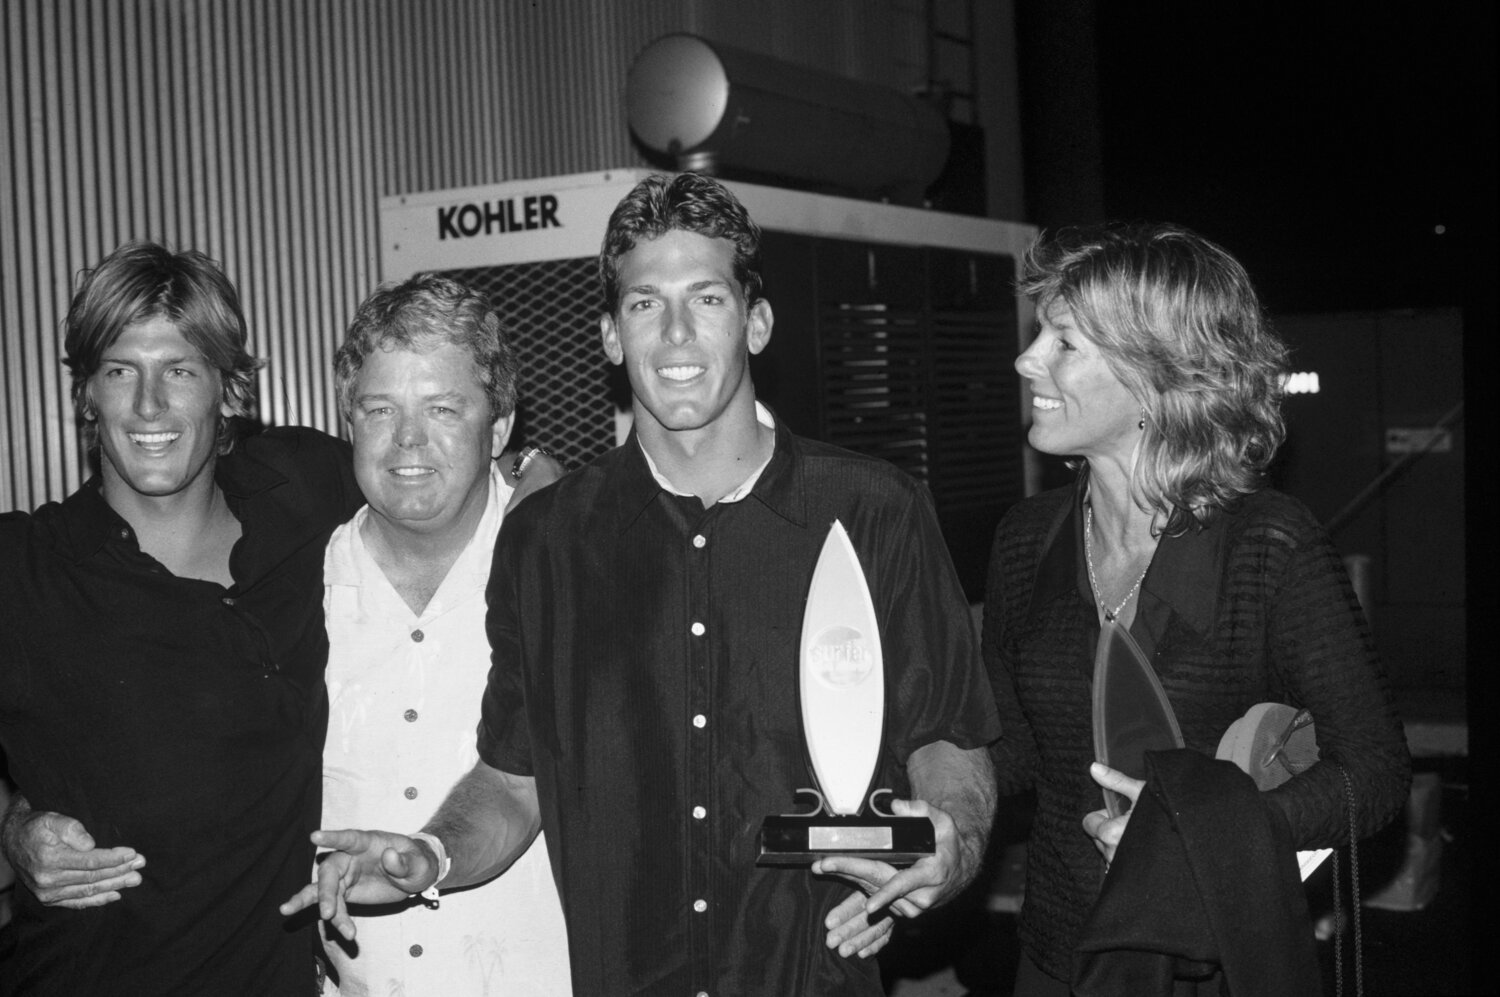 ABOUT — ANDY IRONS FOUNDATION